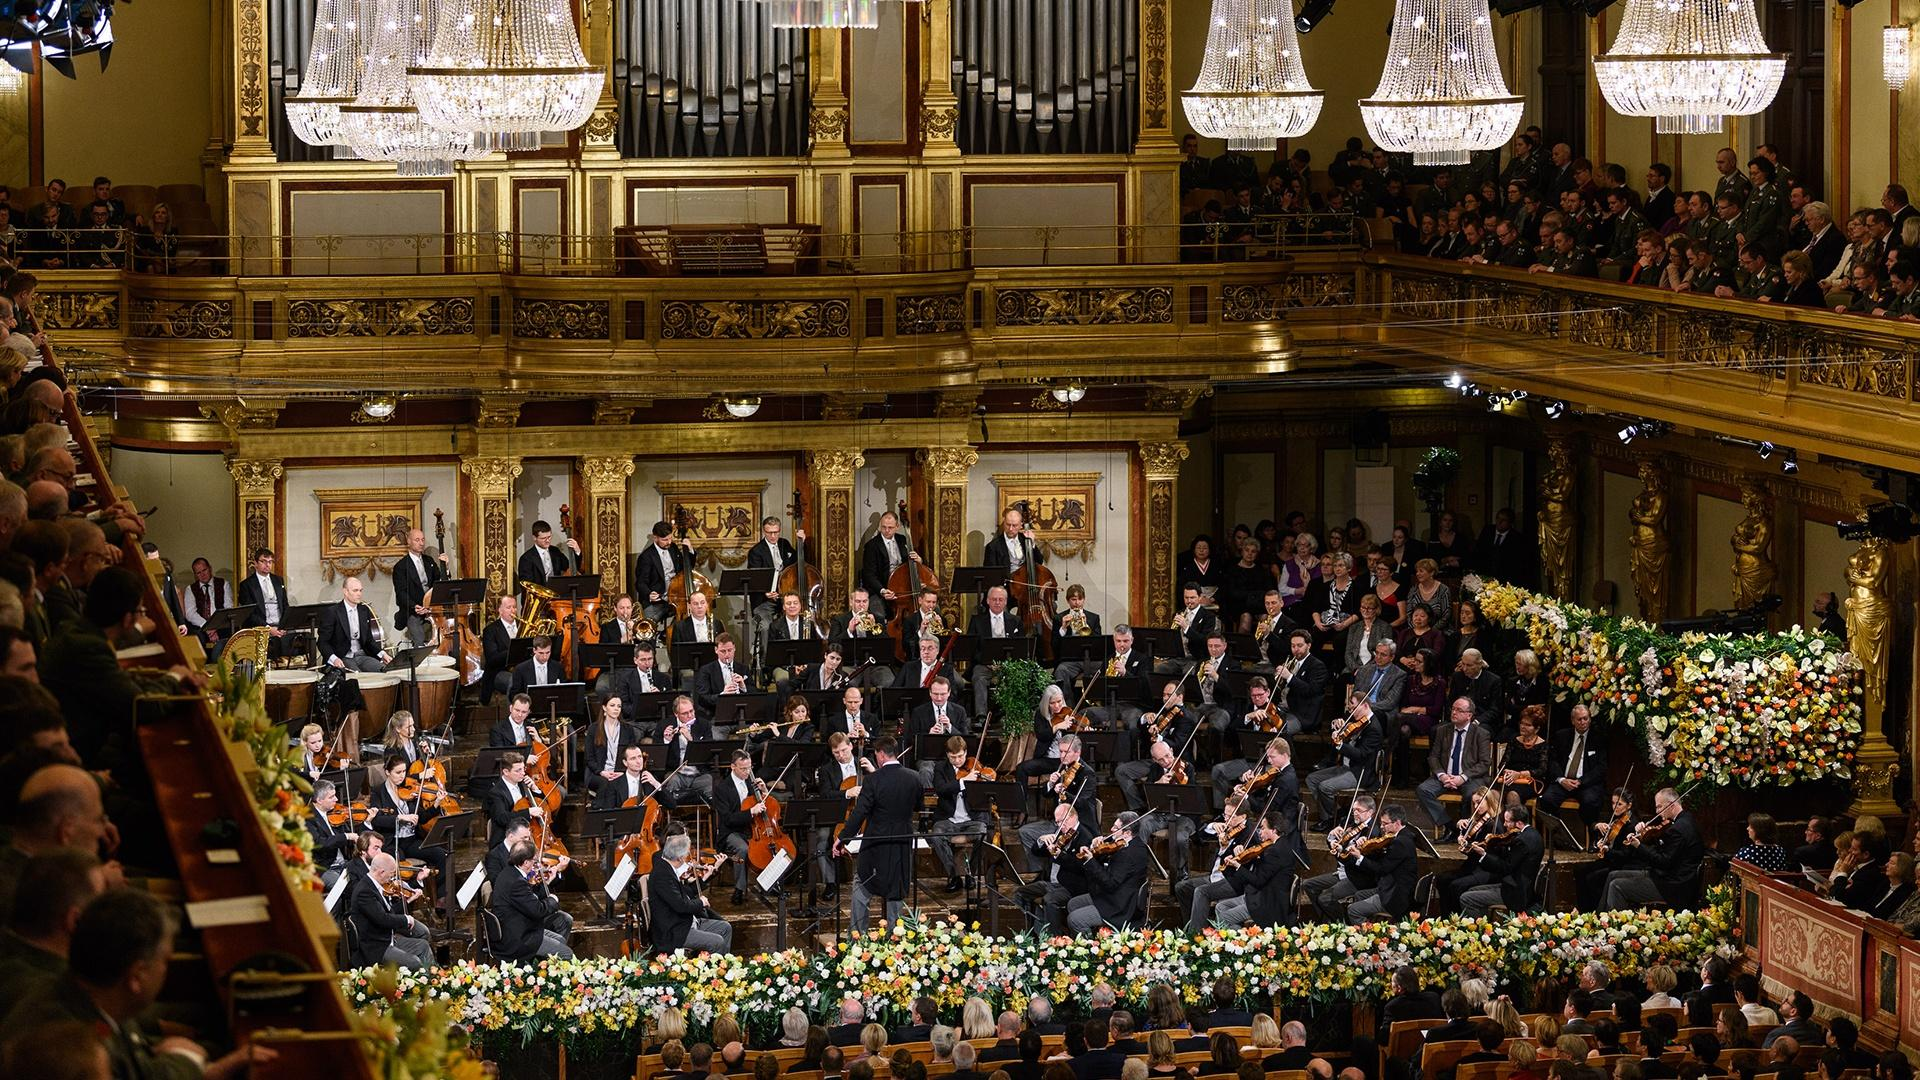 From Vienna: The New Year's Celebration 2020 Previ